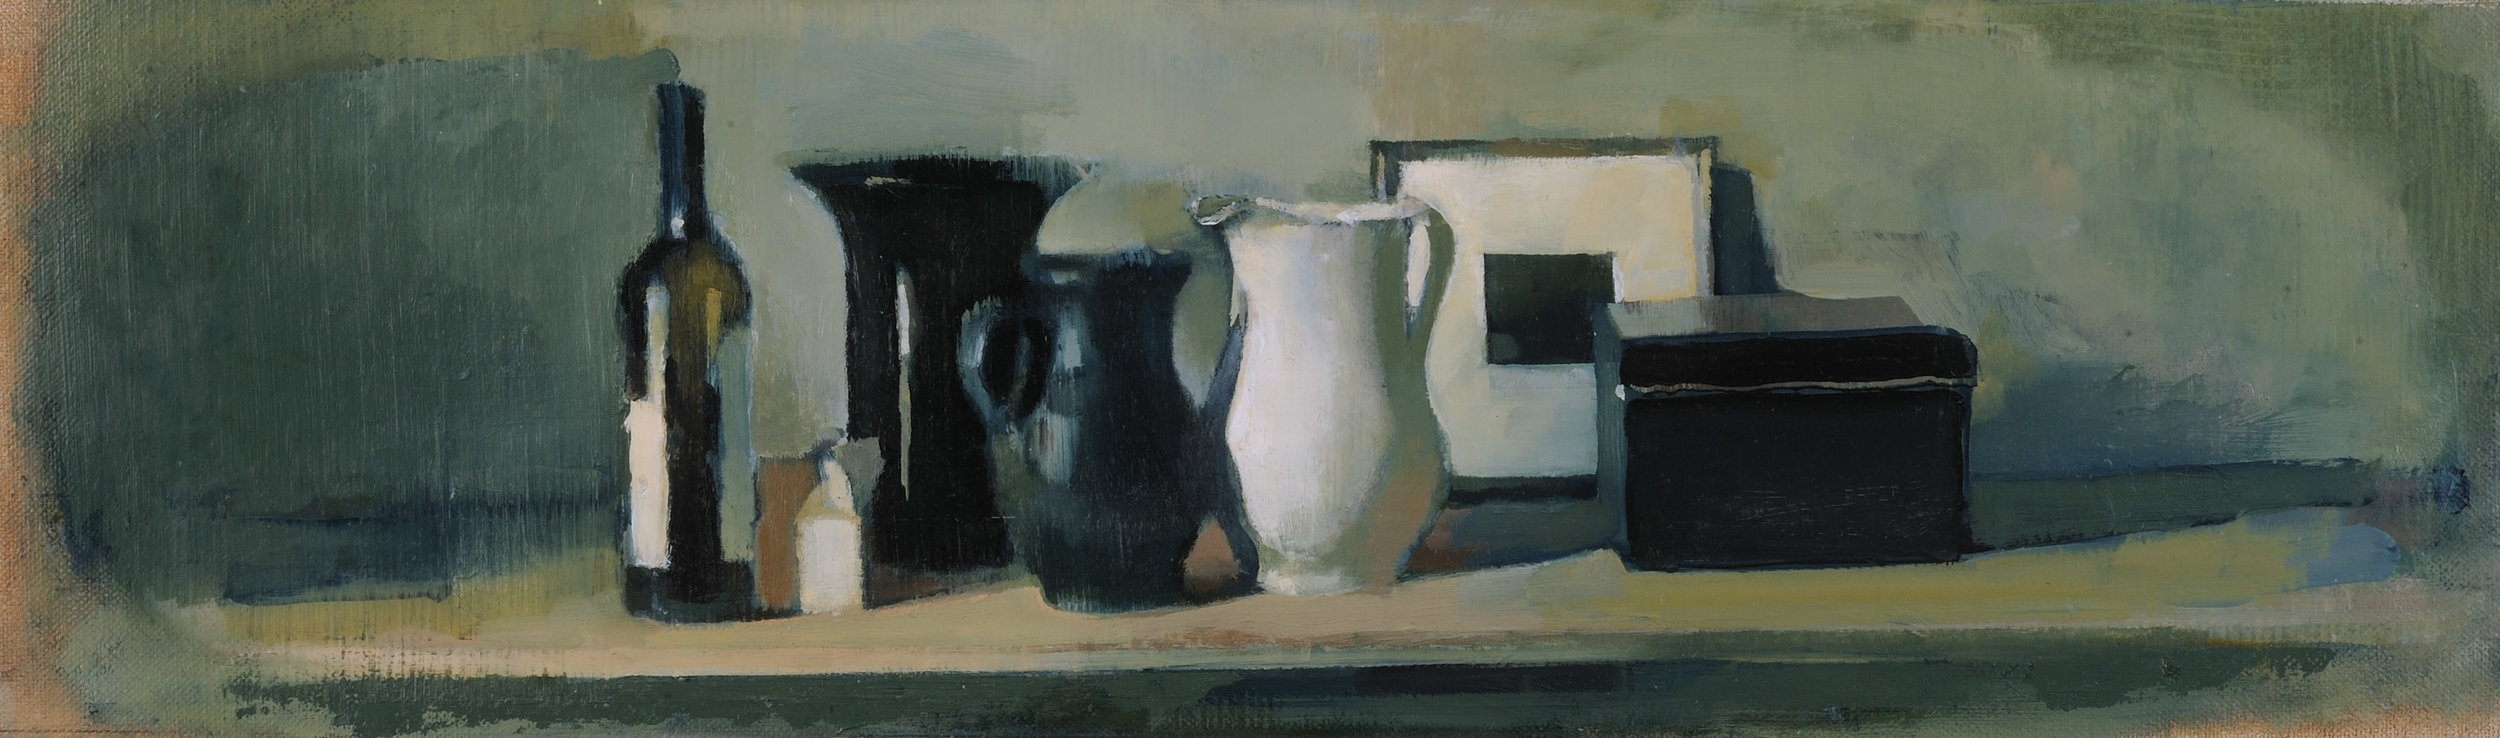 Long Still Life  (742), private collection, 2017